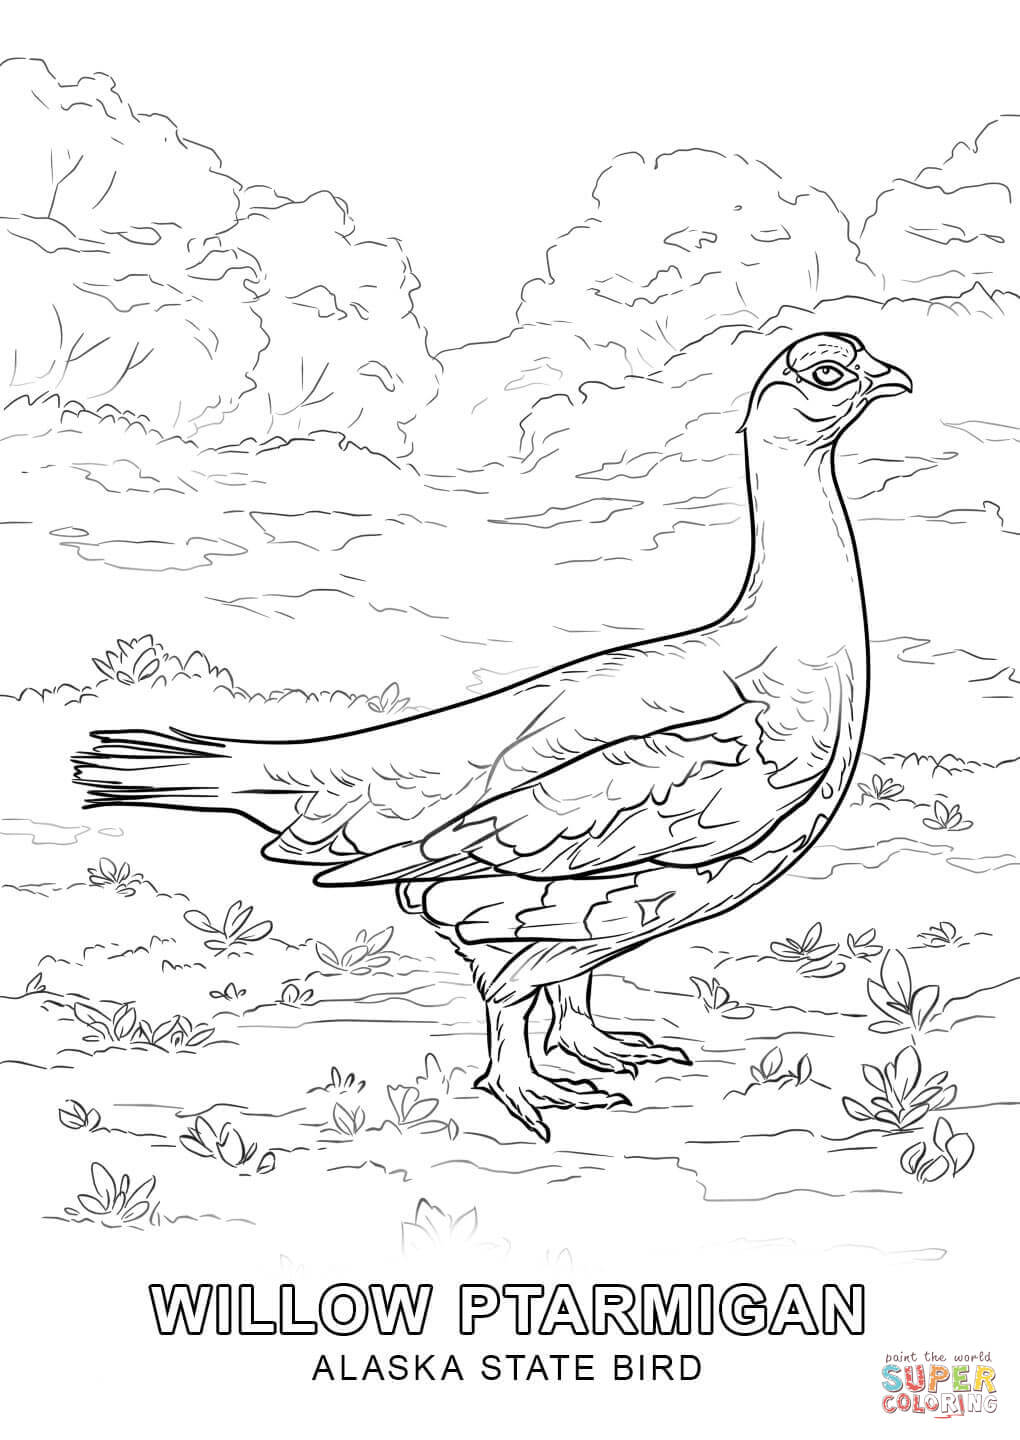 alaska state bird coloring page free printable coloring pages